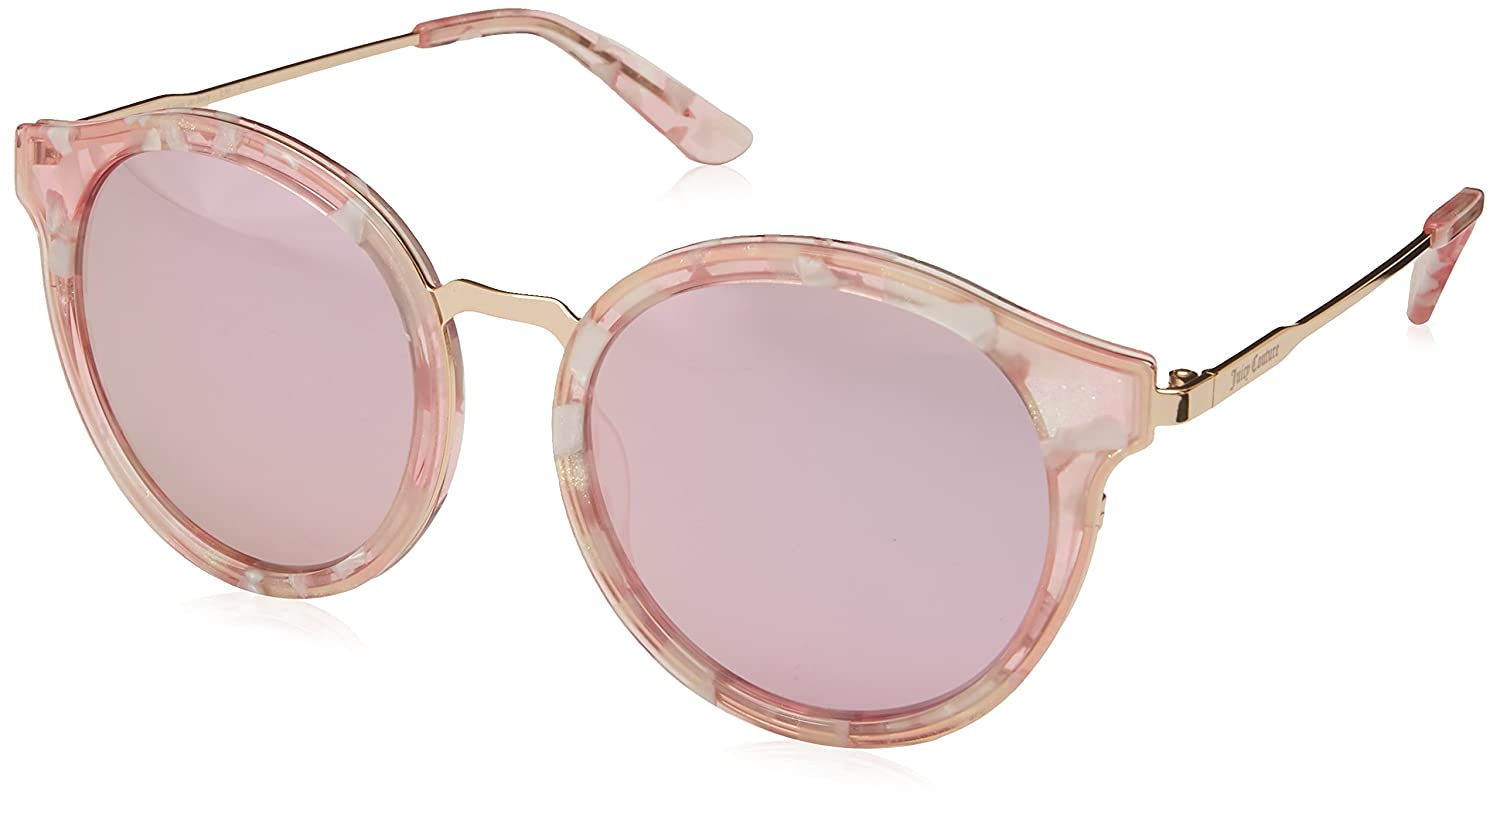 dad587e2ff8510 Amazon.com  Juicy Couture Women s Ju596 s Round Sunglasses, Pink Gold, 52  mm  Clothing